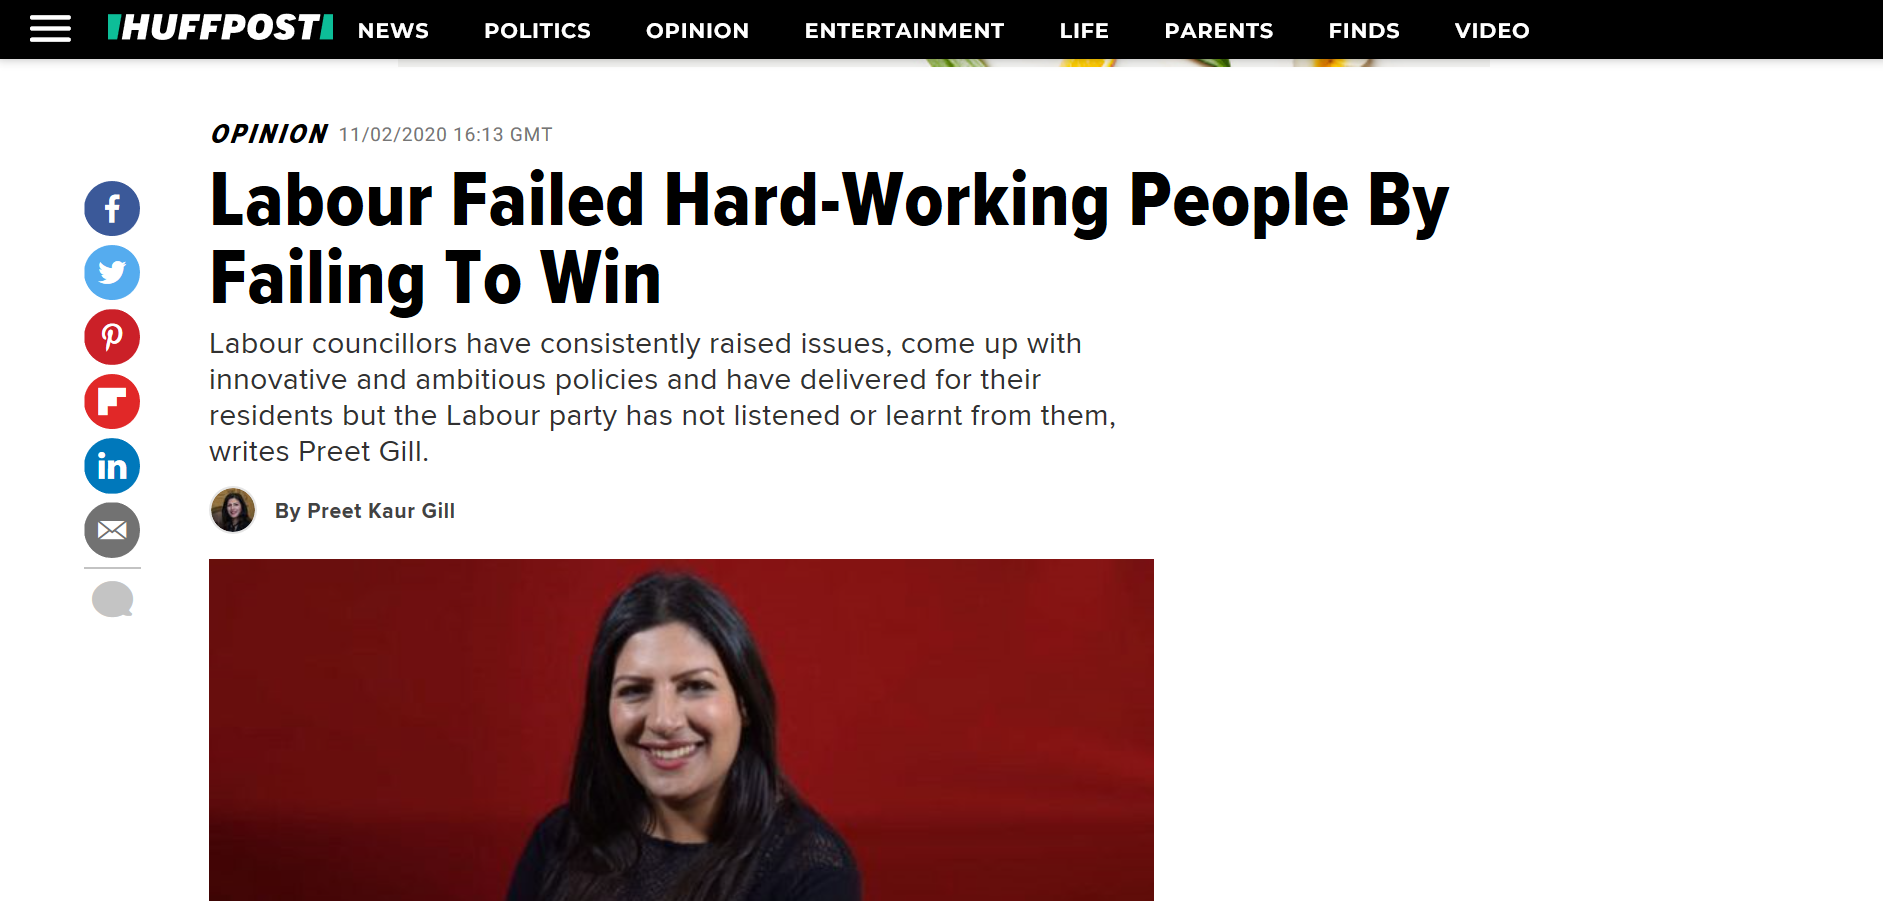 Preet Kaur Gill MP writes for HuffPost on the need for Labour to listen to Councillors.